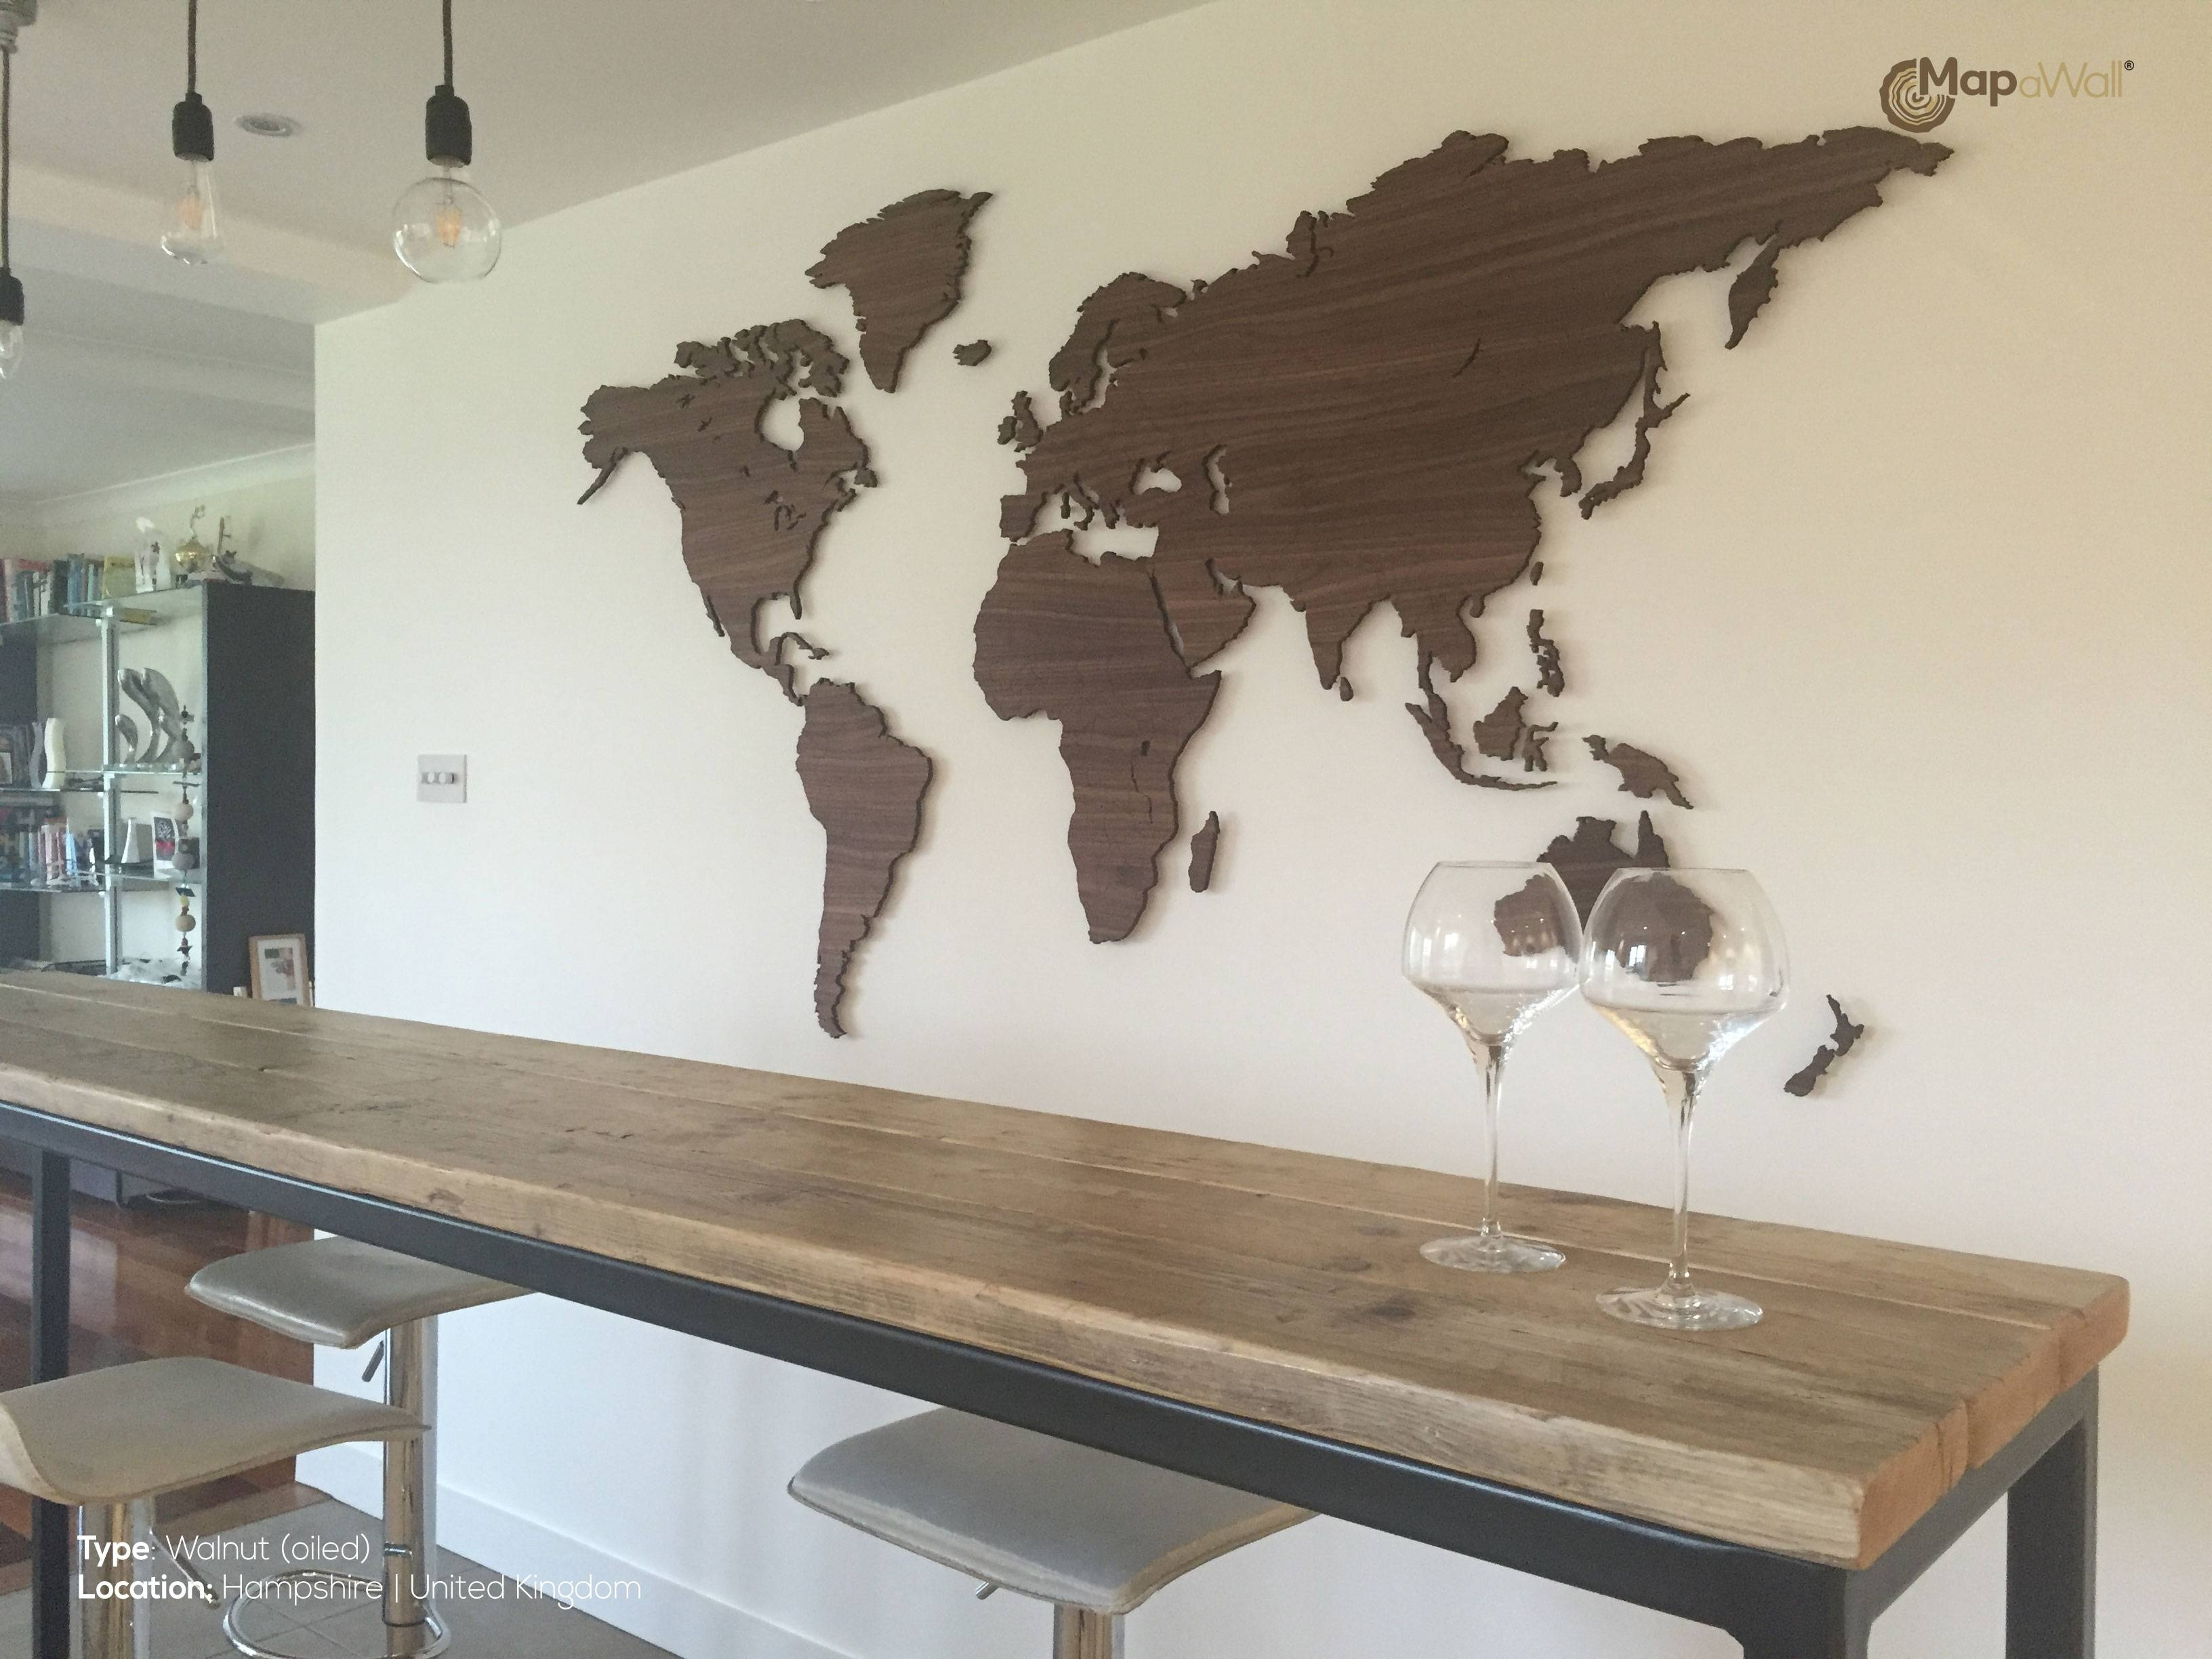 World Map Walnut Country Borders – Mapawall Pertaining To Latest Wooden World Map Wall Art (View 5 of 20)